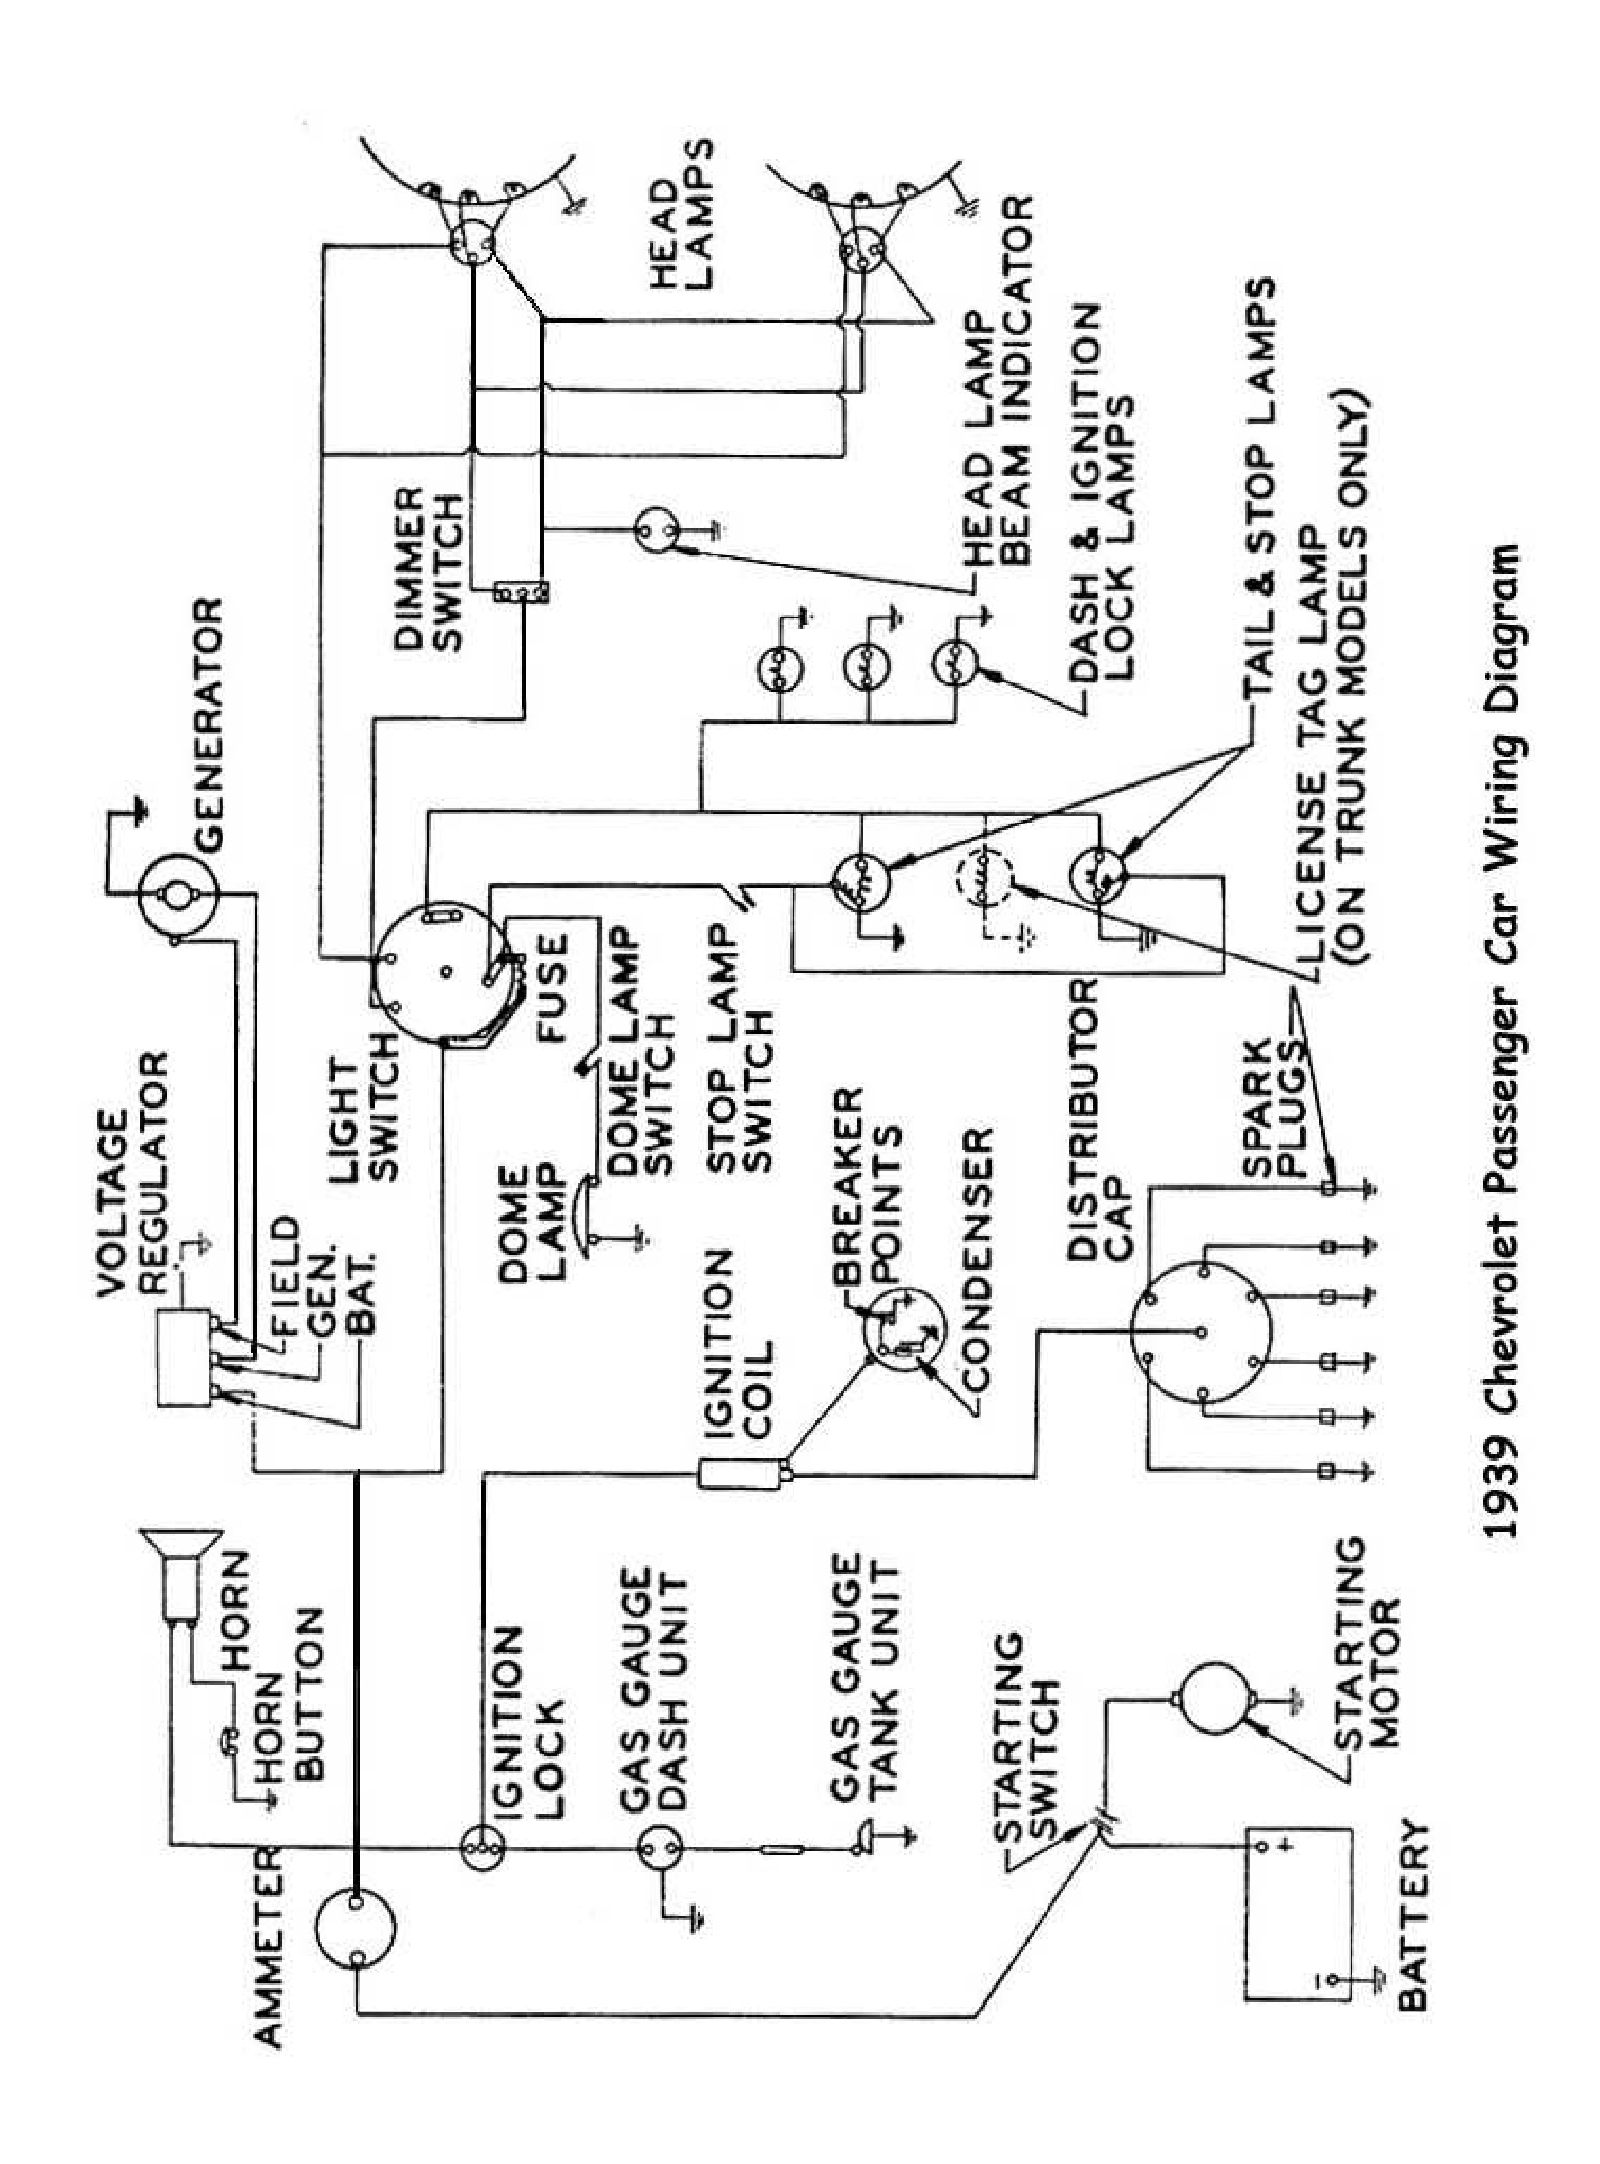 39car chevy wiring diagrams electrical wiring diagrams for cars at gsmx.co